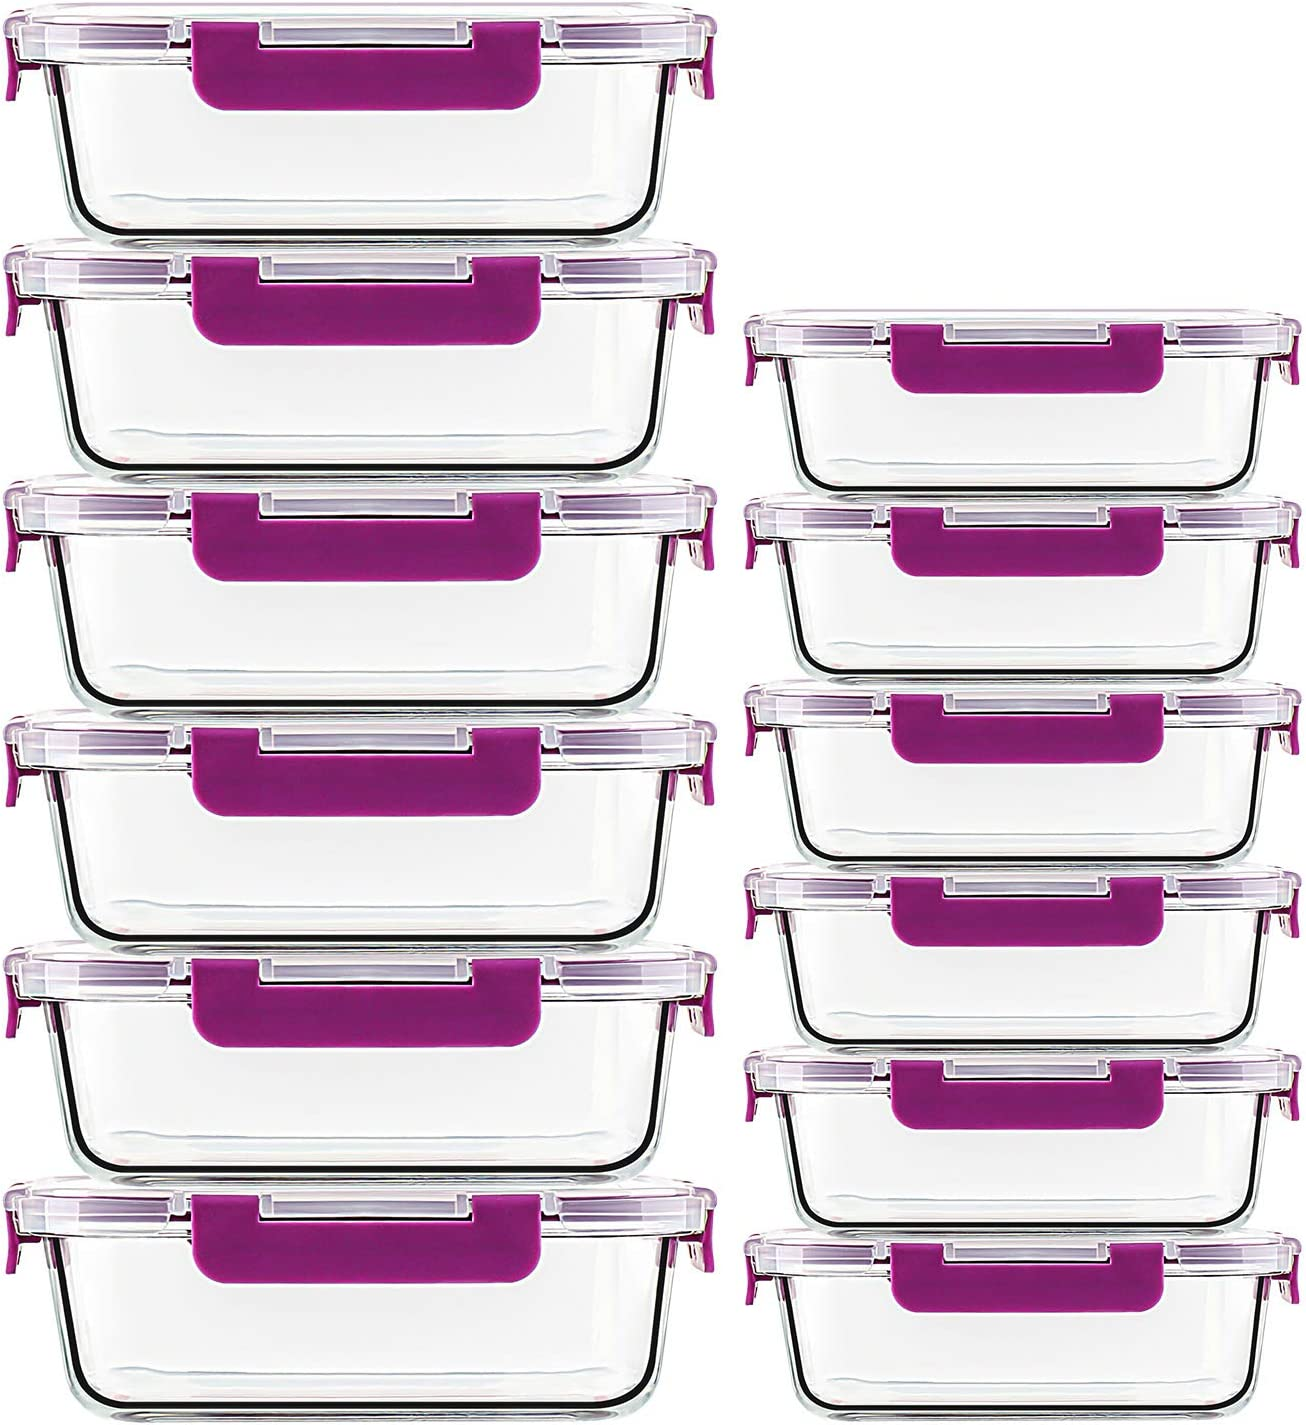 UMI UMIZILI 12 Pack 2 Size (34oz + 12oz) Glass Food Containers with Lids, Airtight Meal Prep Containers for Lunch, Leftover, Safe for Fridge to Microwave, Oven, Dishwasher (Purple Glassware Set)